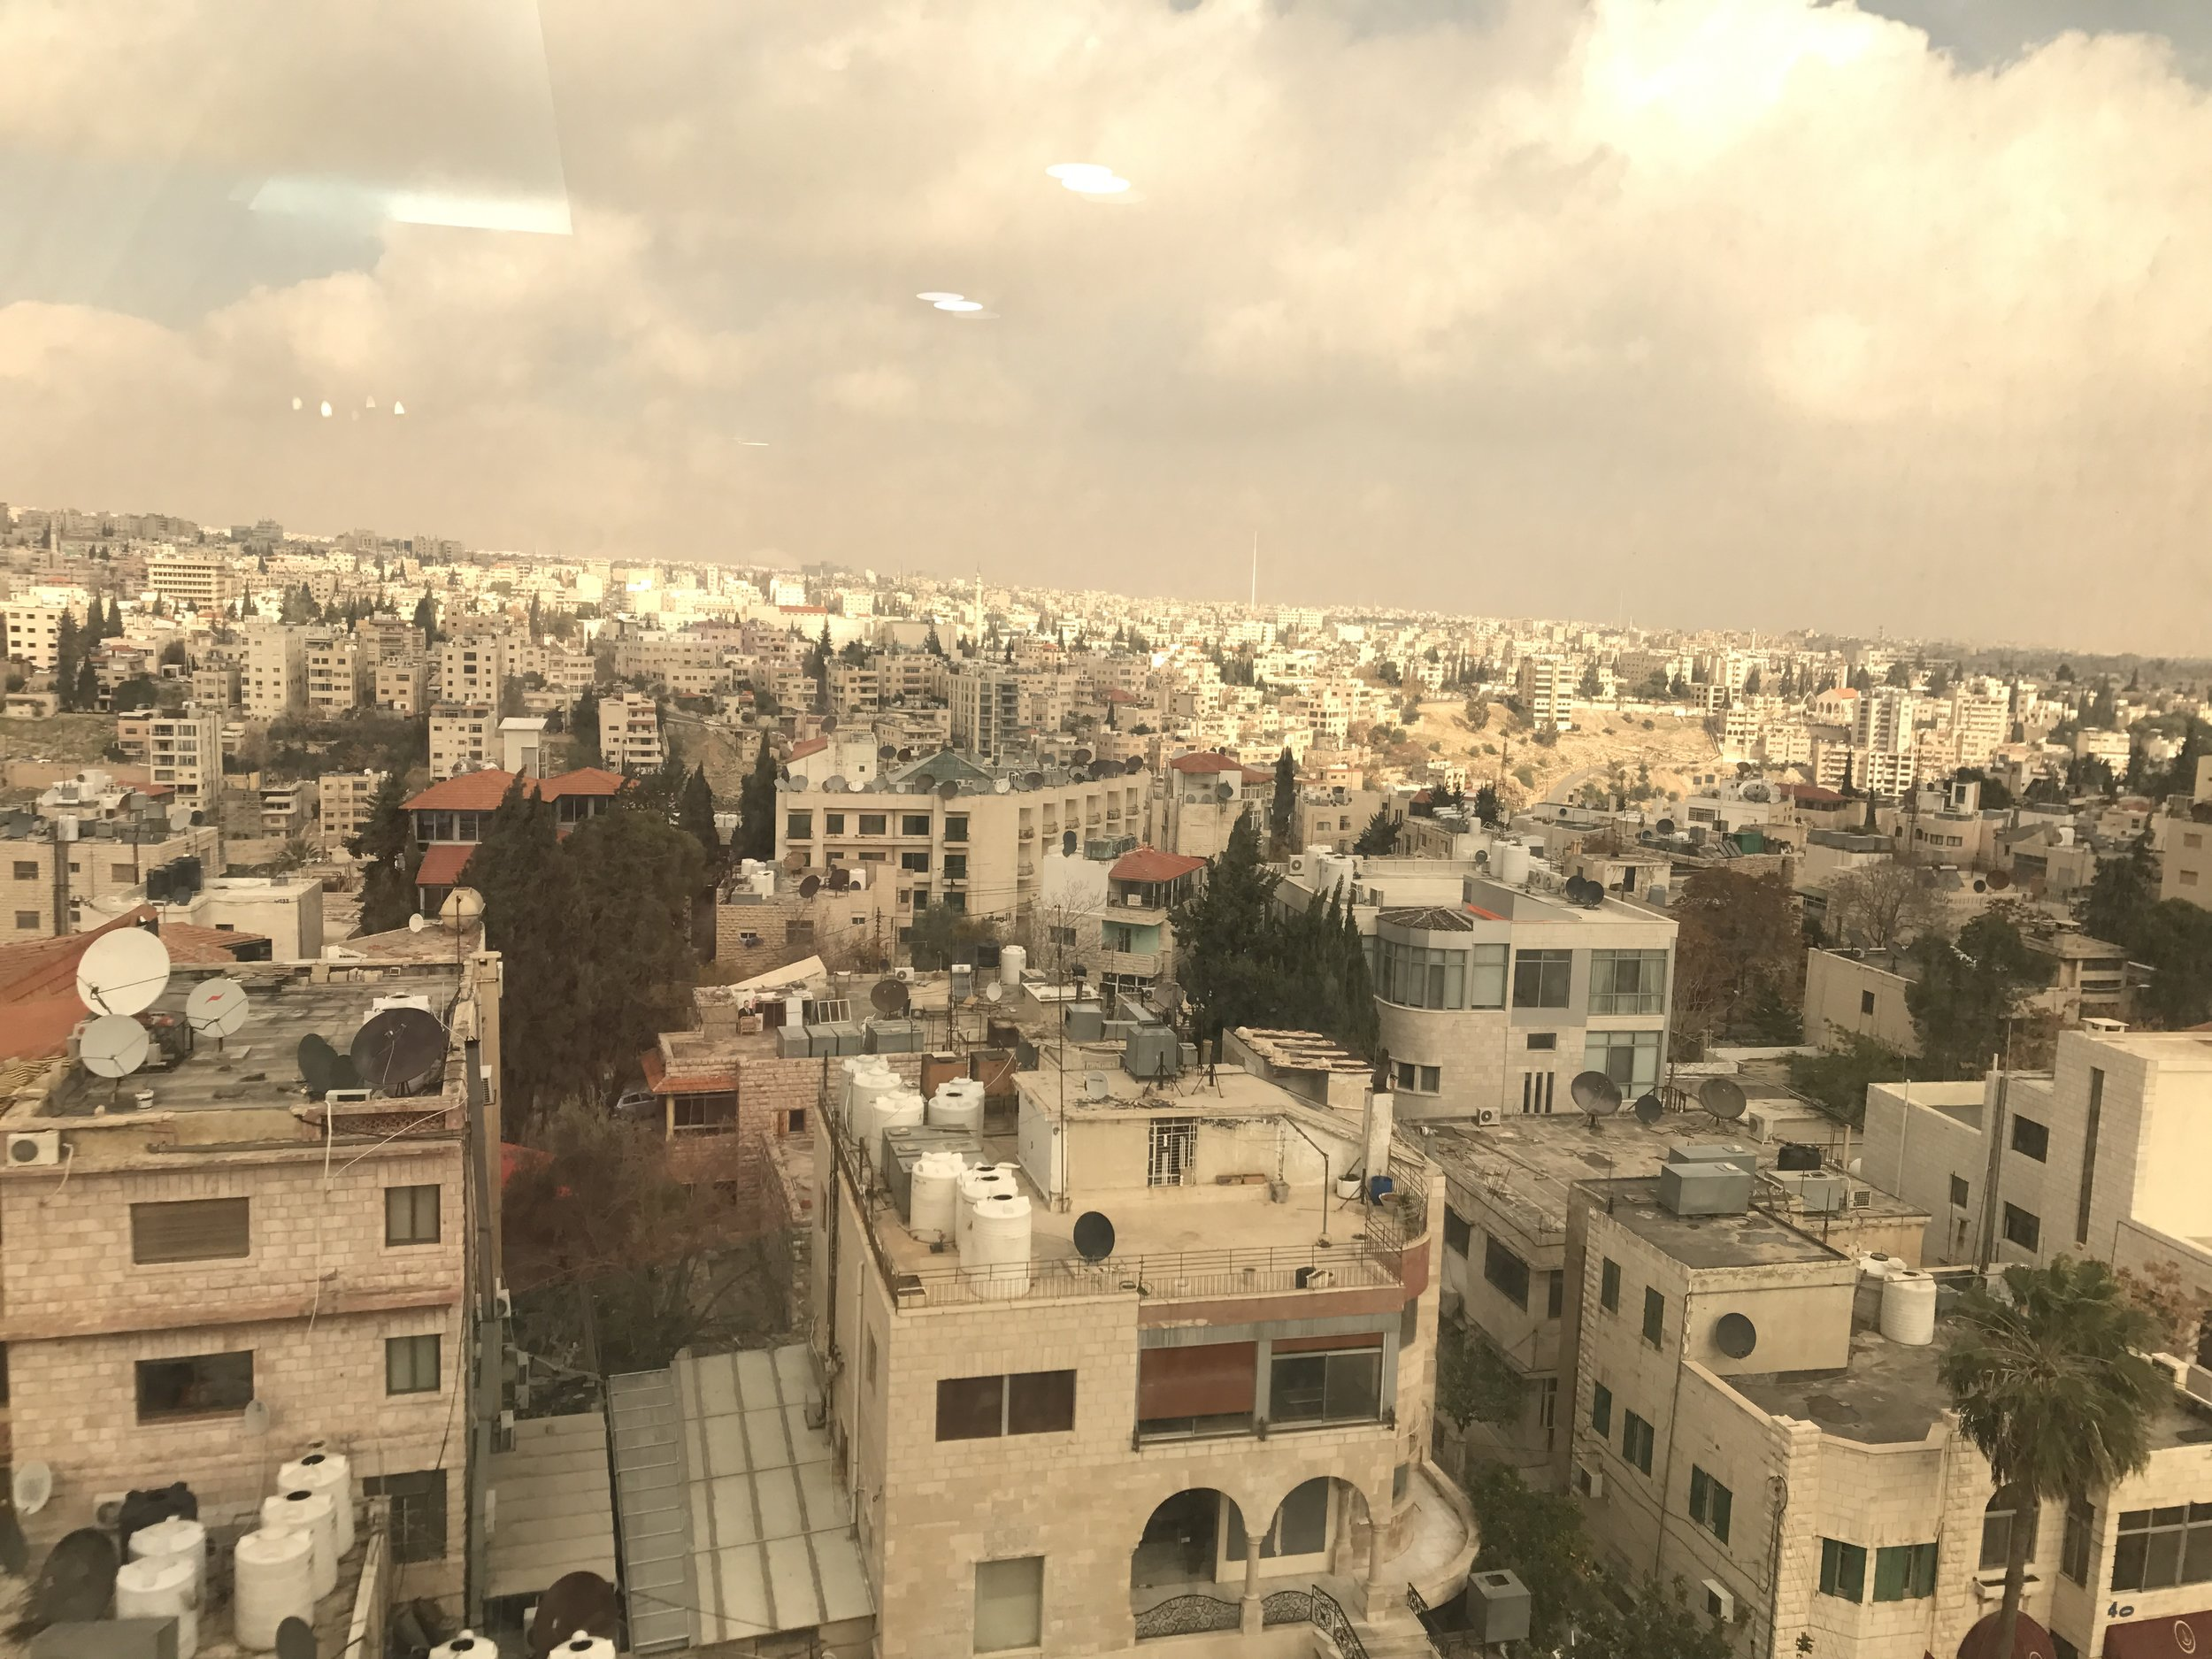 The first picture I took in Jordan! This was the view from the window of the conference room of the Belle View hotel. This was before everything, before I met my host family, before classes started, before I had barely spoken a word of Arabic in Jordan. I was fascinated by the stacks of identical looking beige buildings. It looked so different from anywhere I had been before. It's funny to look at this picture and think about I was feeling at the time, and I had no idea what to expect. Little did I know how much I would learn and how much I would enjoy this experience. Photo credit: Samantha Manno, 2018